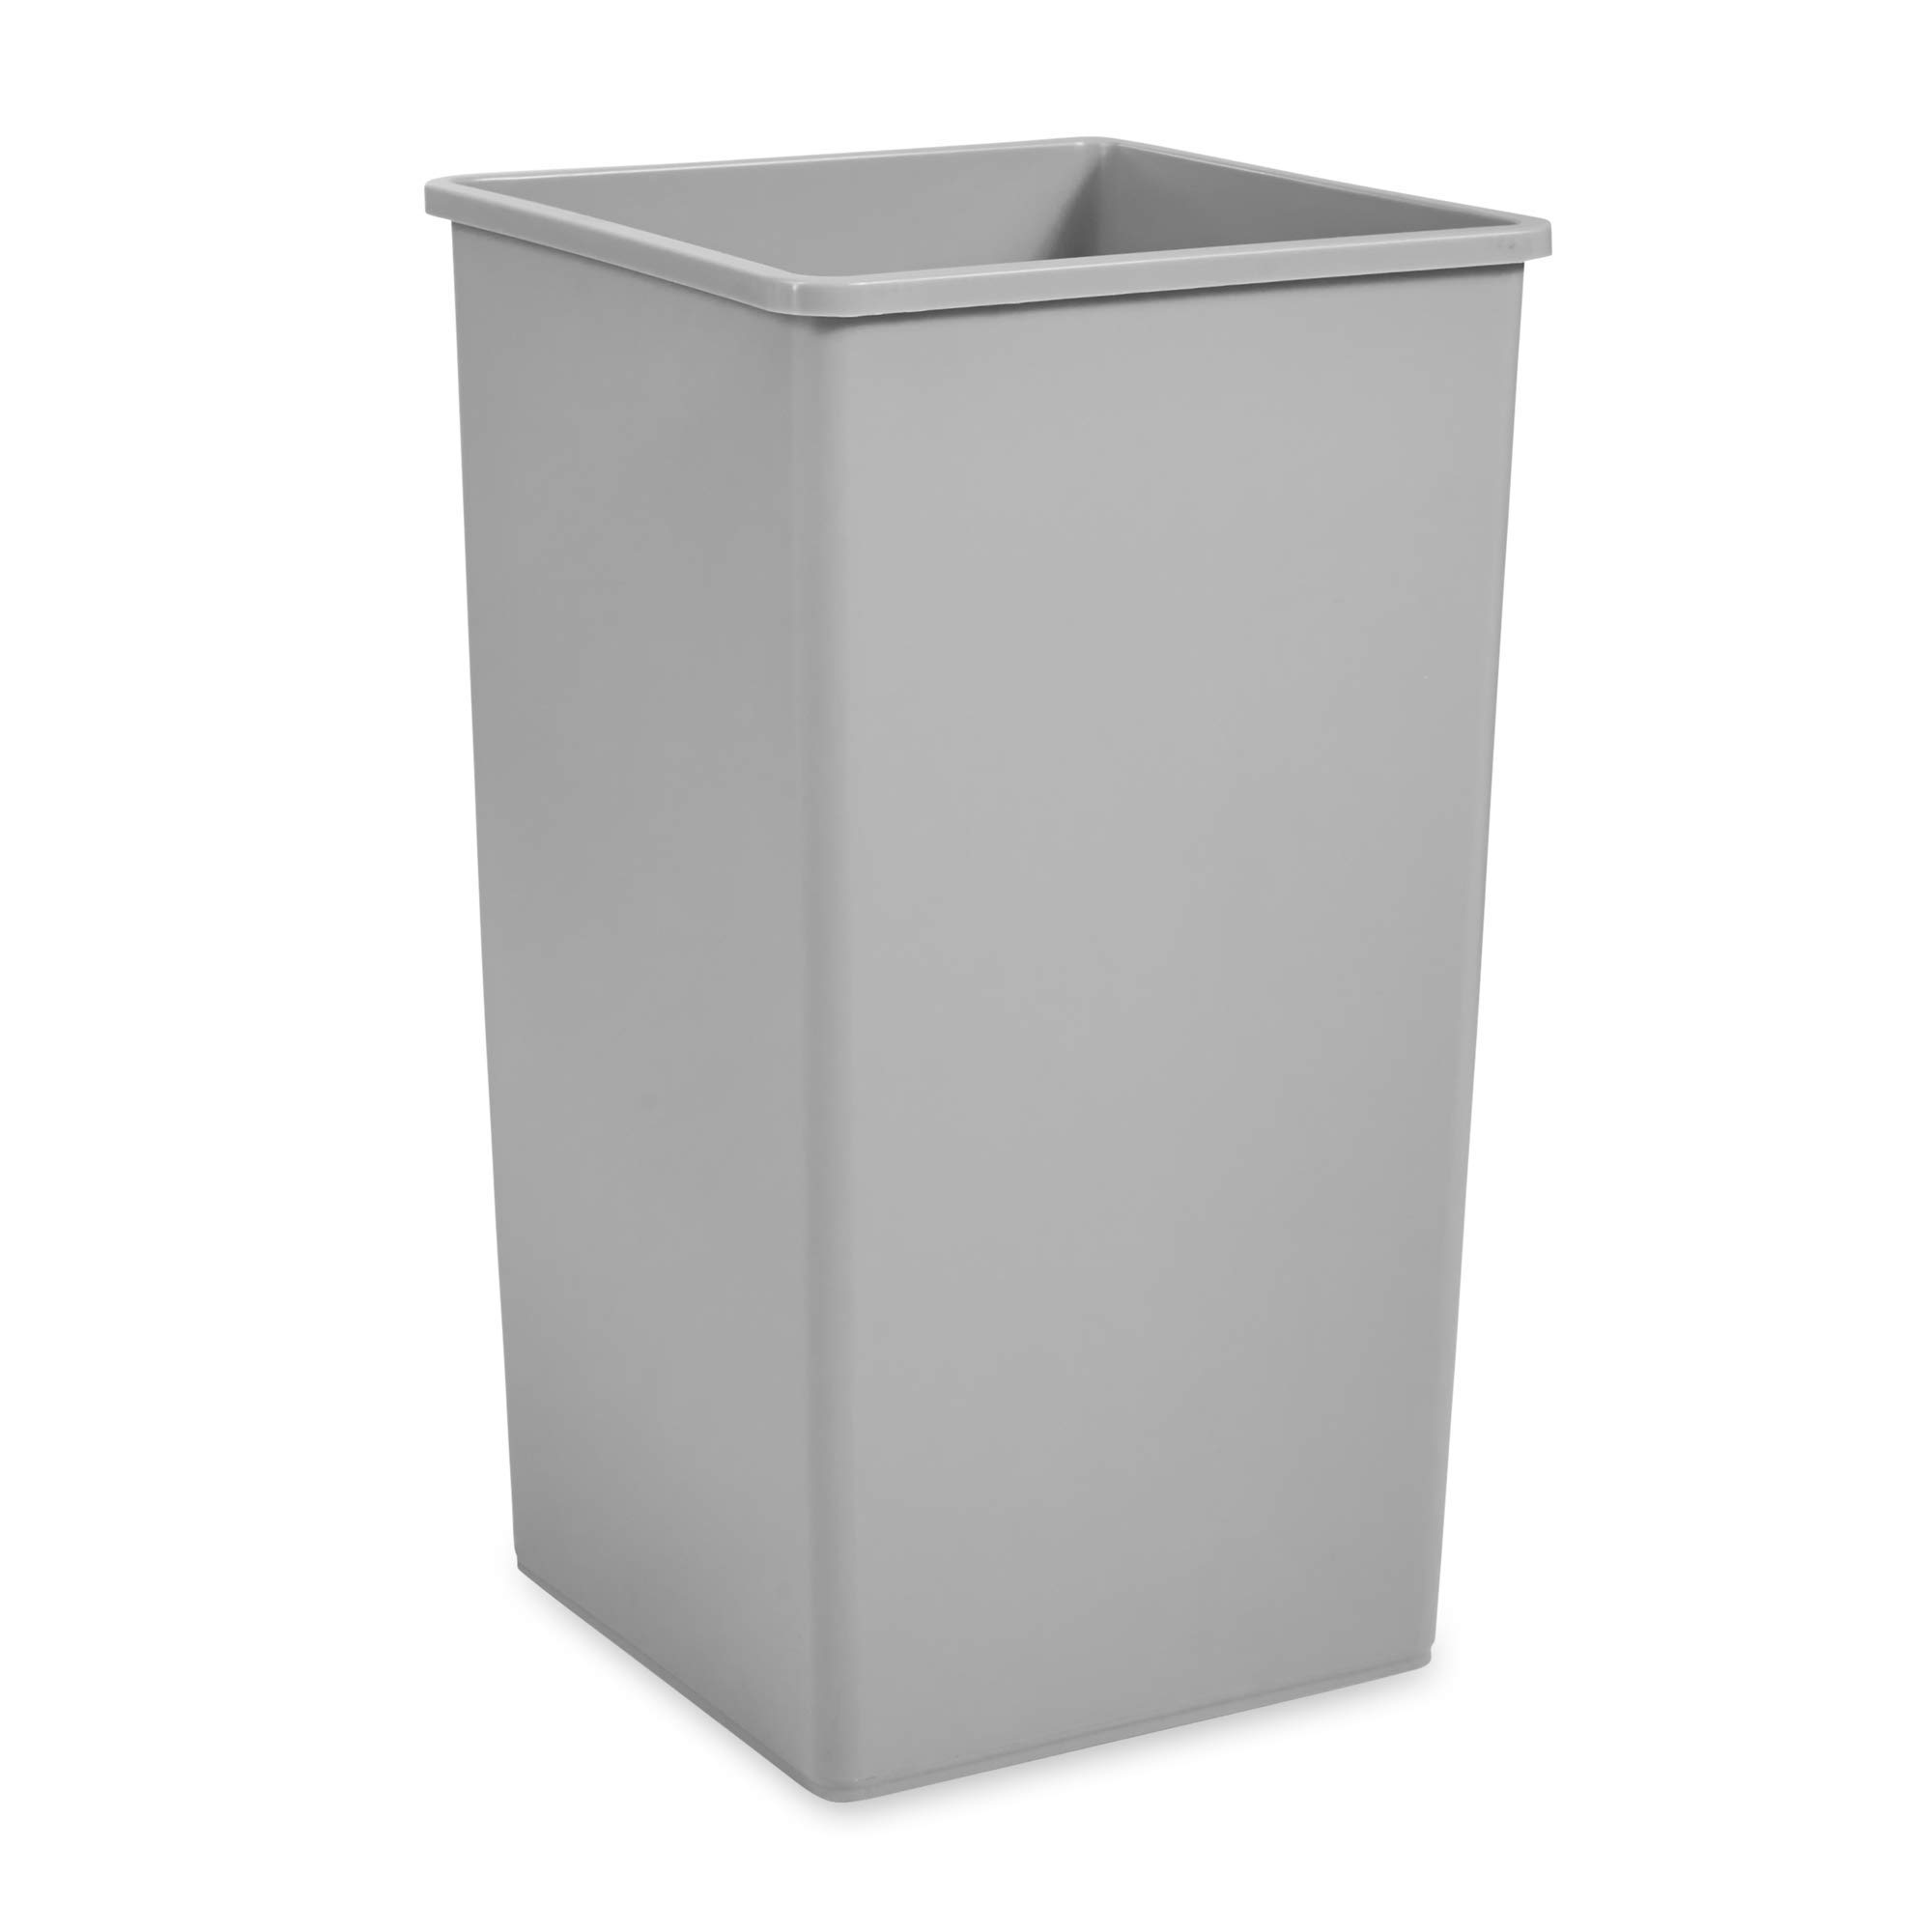 Rubbermaid Commercial Square 50-Gallon Untouchable Trash Can, Gray (FG395800GRAY) by Rubbermaid Commercial Products